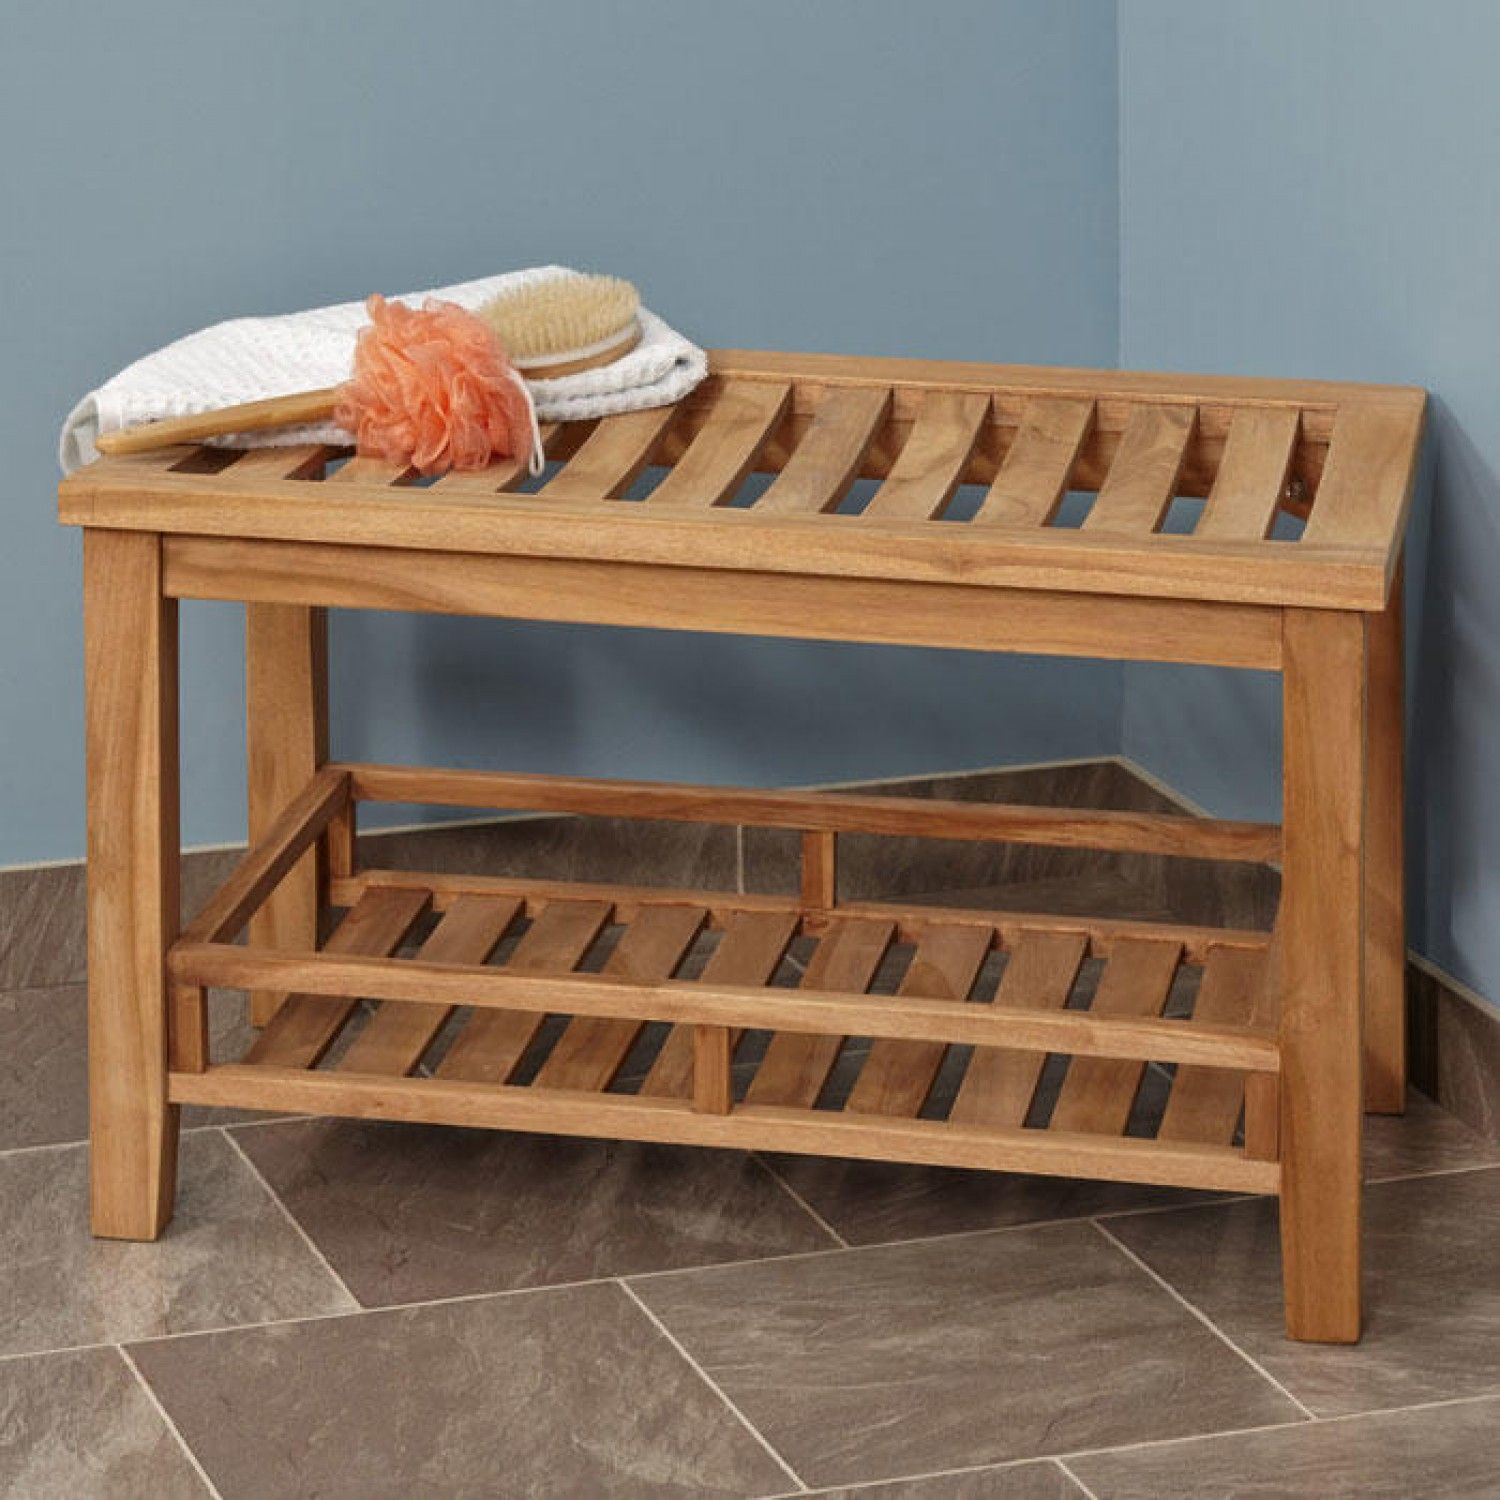 Large Teak Rectangular - ADA Compliant - Shower Stool | Teak, Stools ...